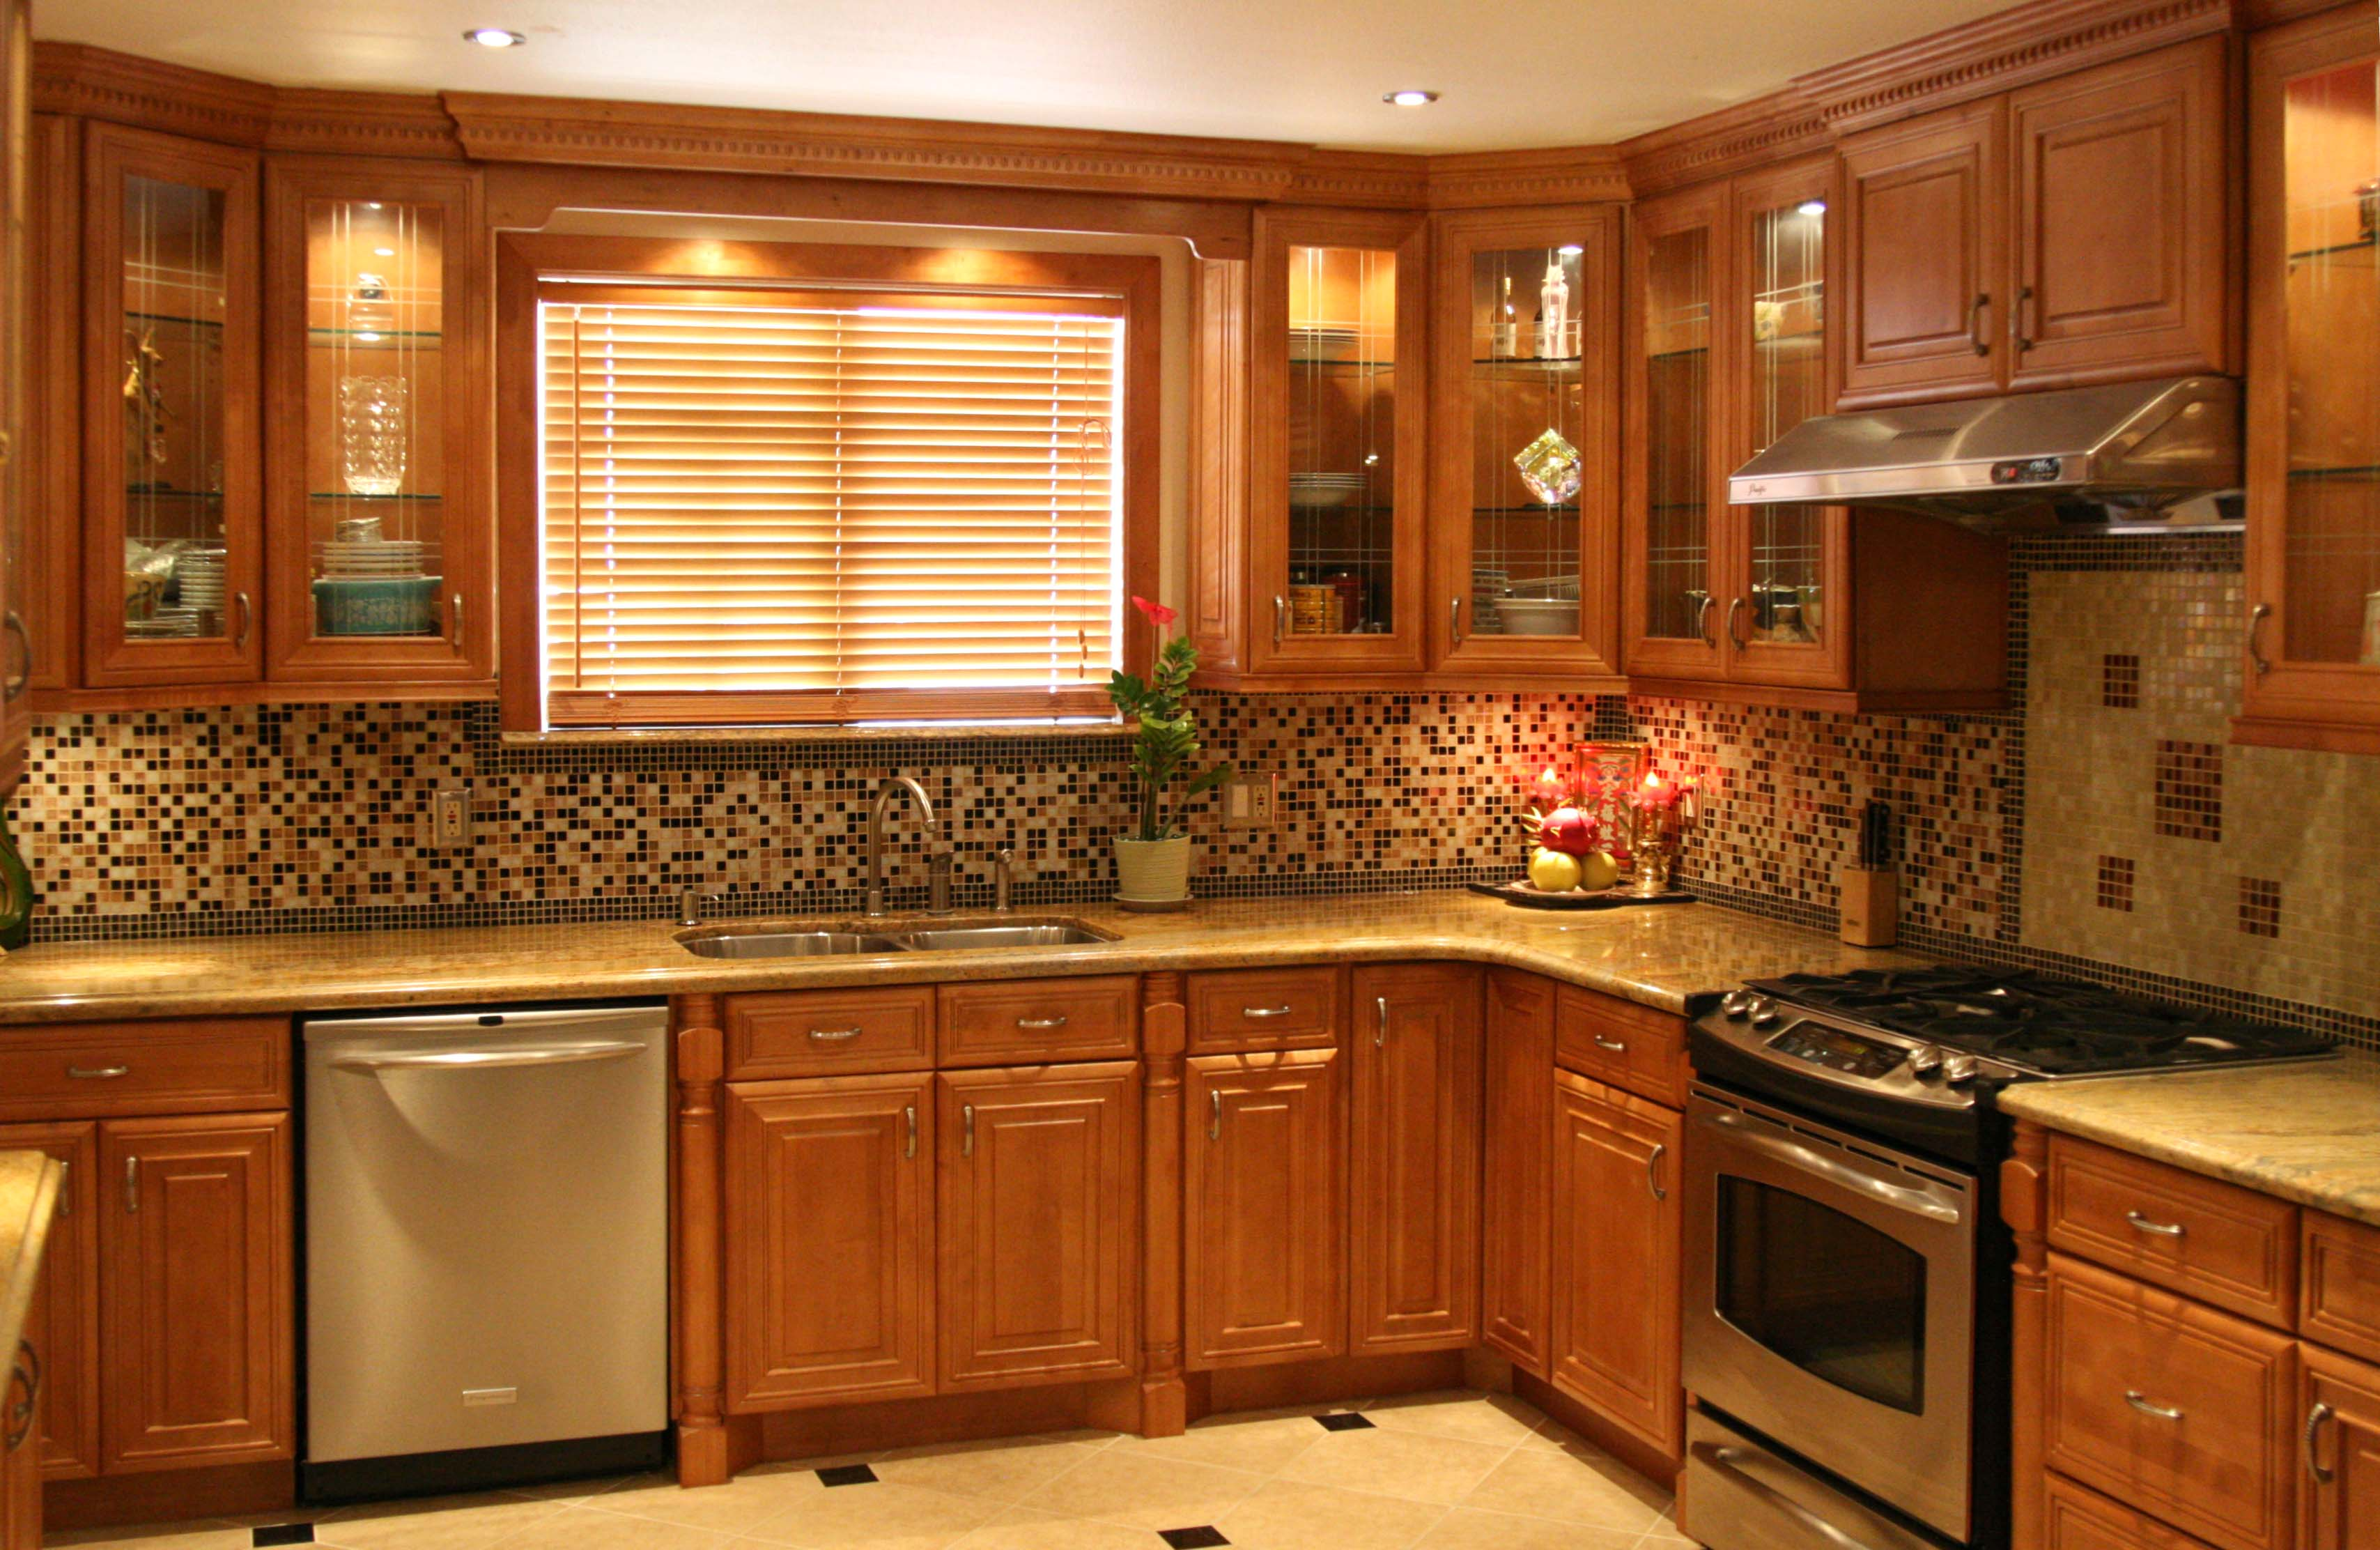 solid wood vs laminate kitchen cabinets wood kitchen cabinets Solid Wood vs Laminate Kitchen Cabinets